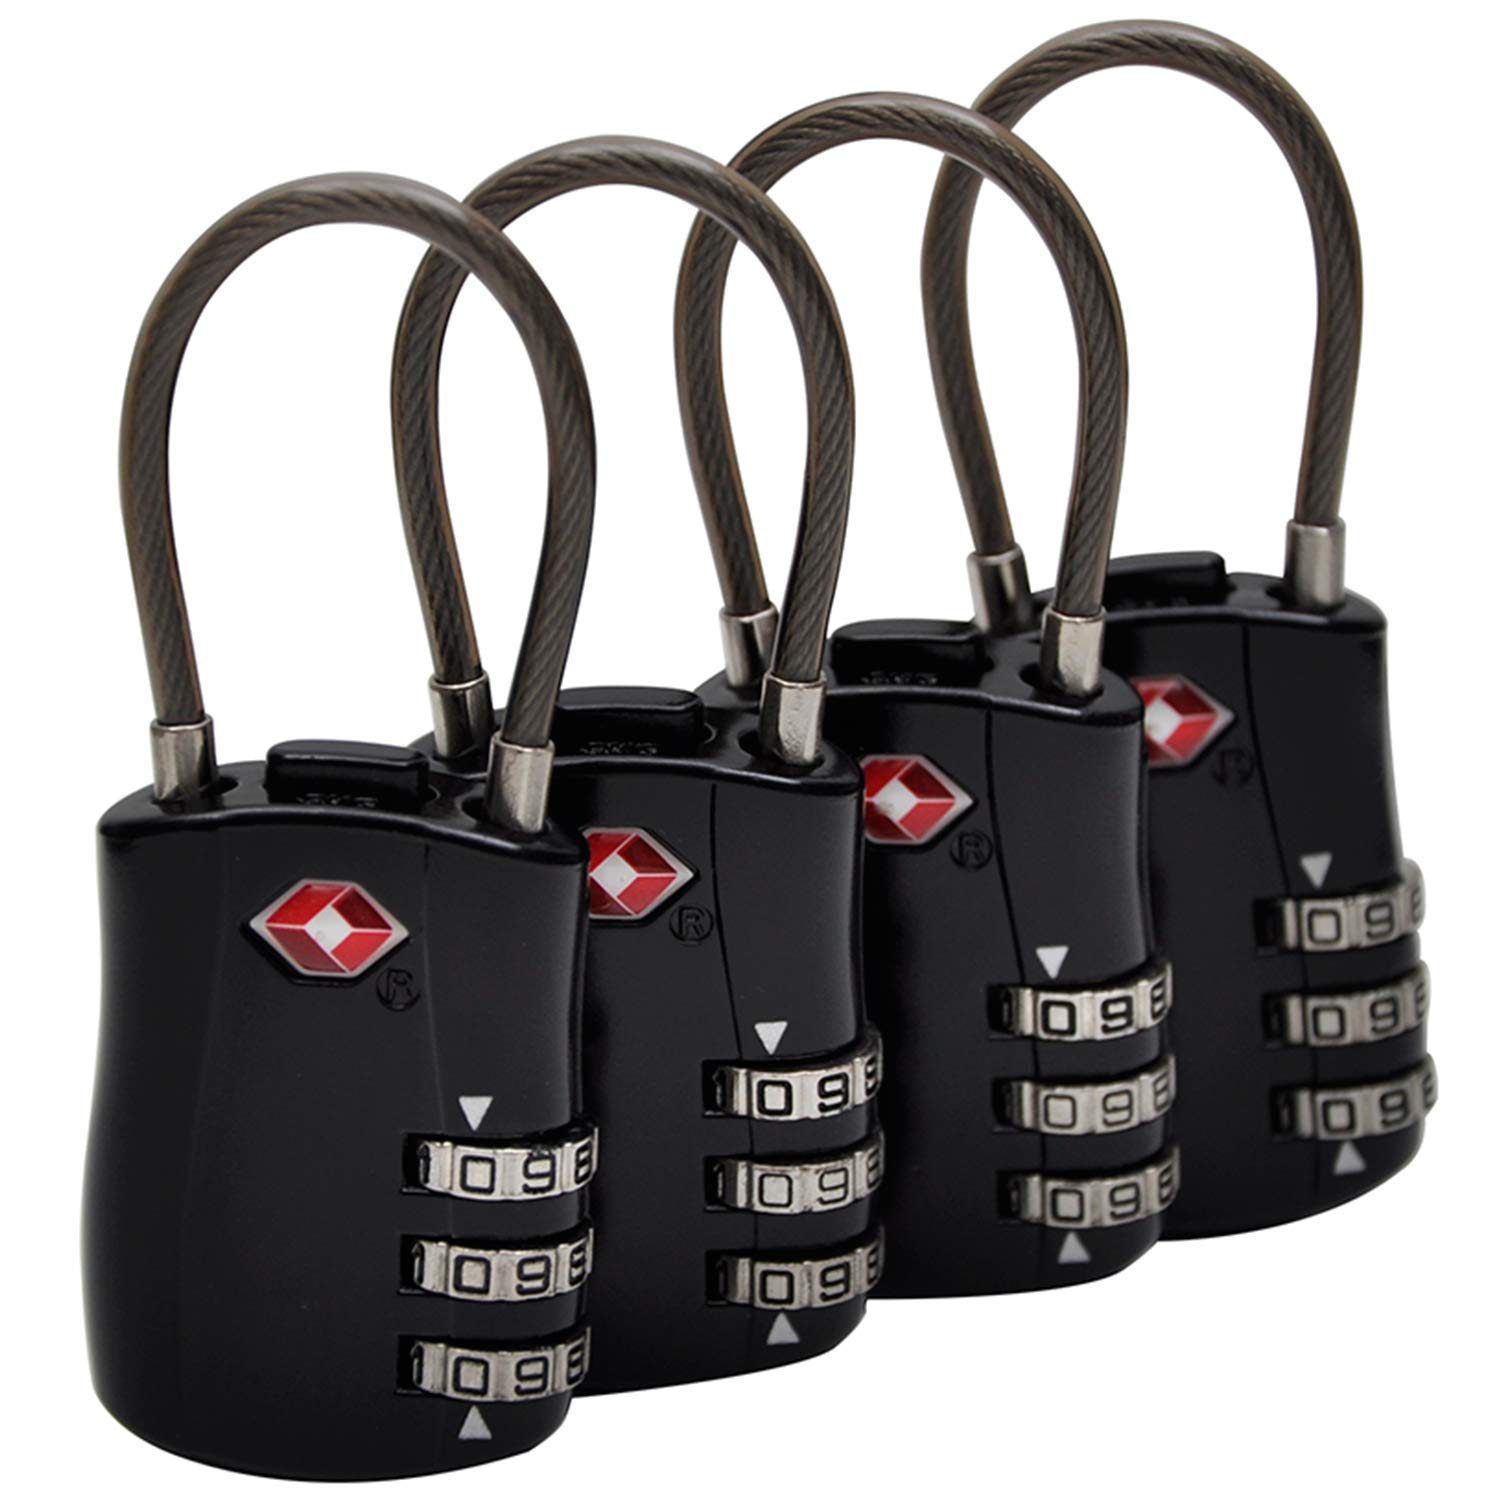 Luggage Locks Tsa Approved Travel Suitcase Combination Padlock by 3 Digit Combination Added Security(4 black)